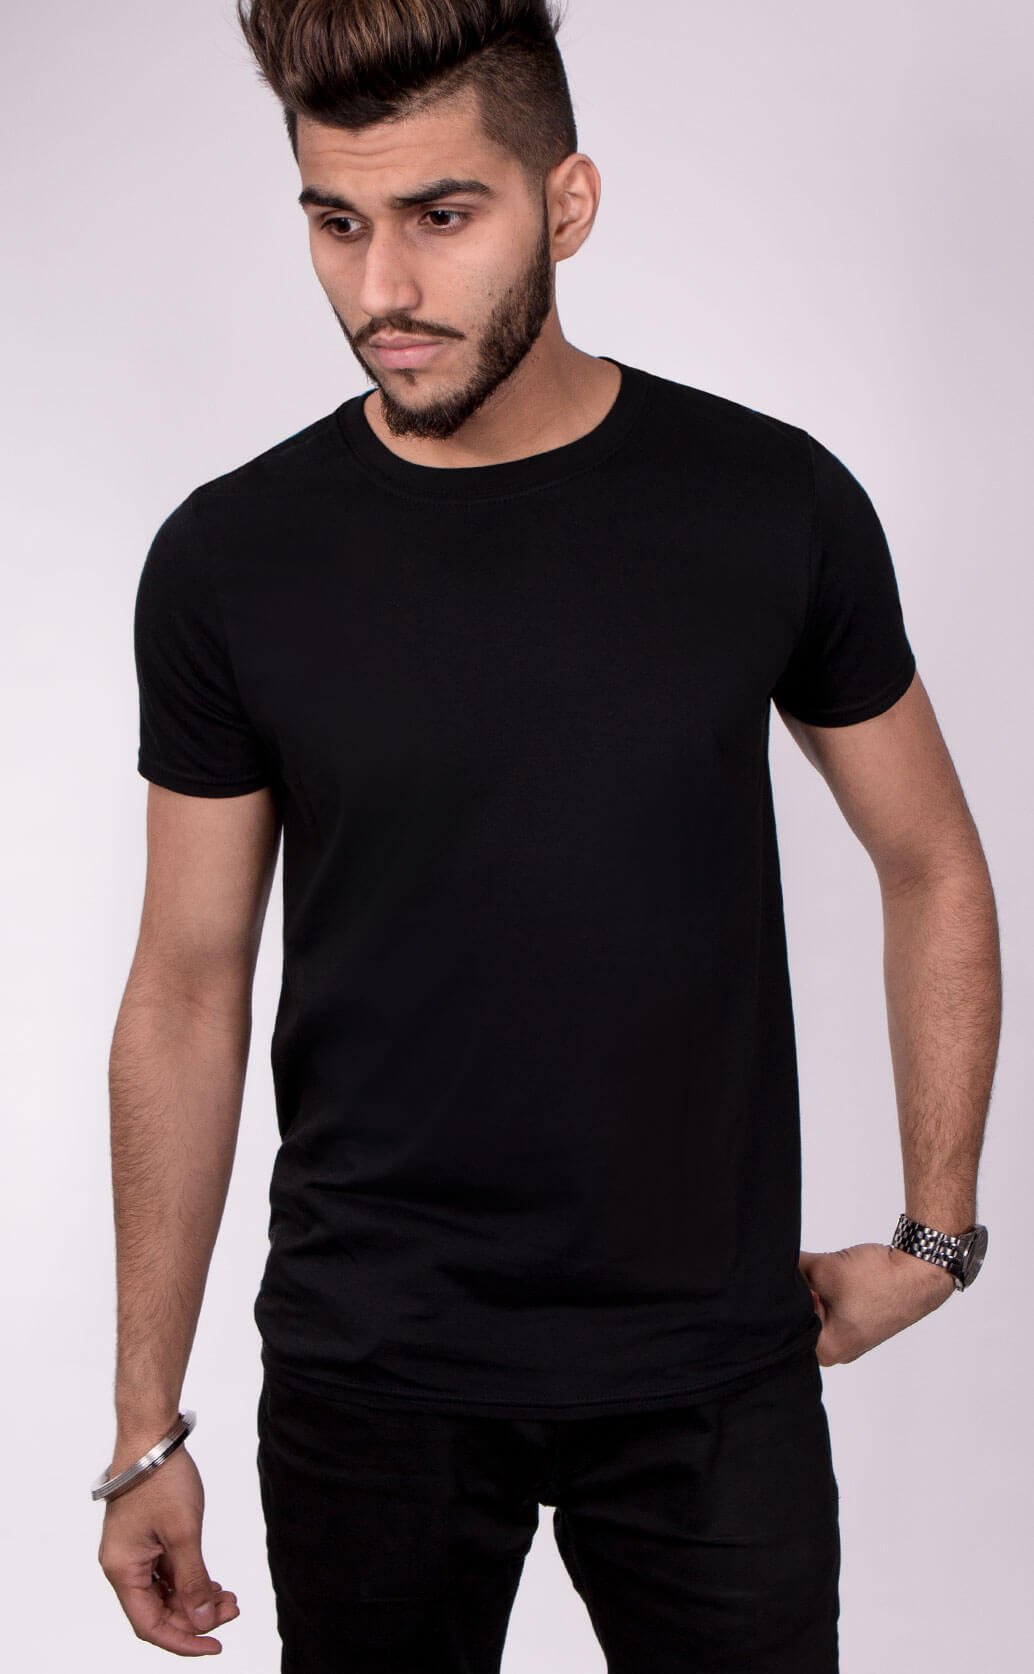 Size guide image for Mens Style Fit shirt type. Model is dressed in black